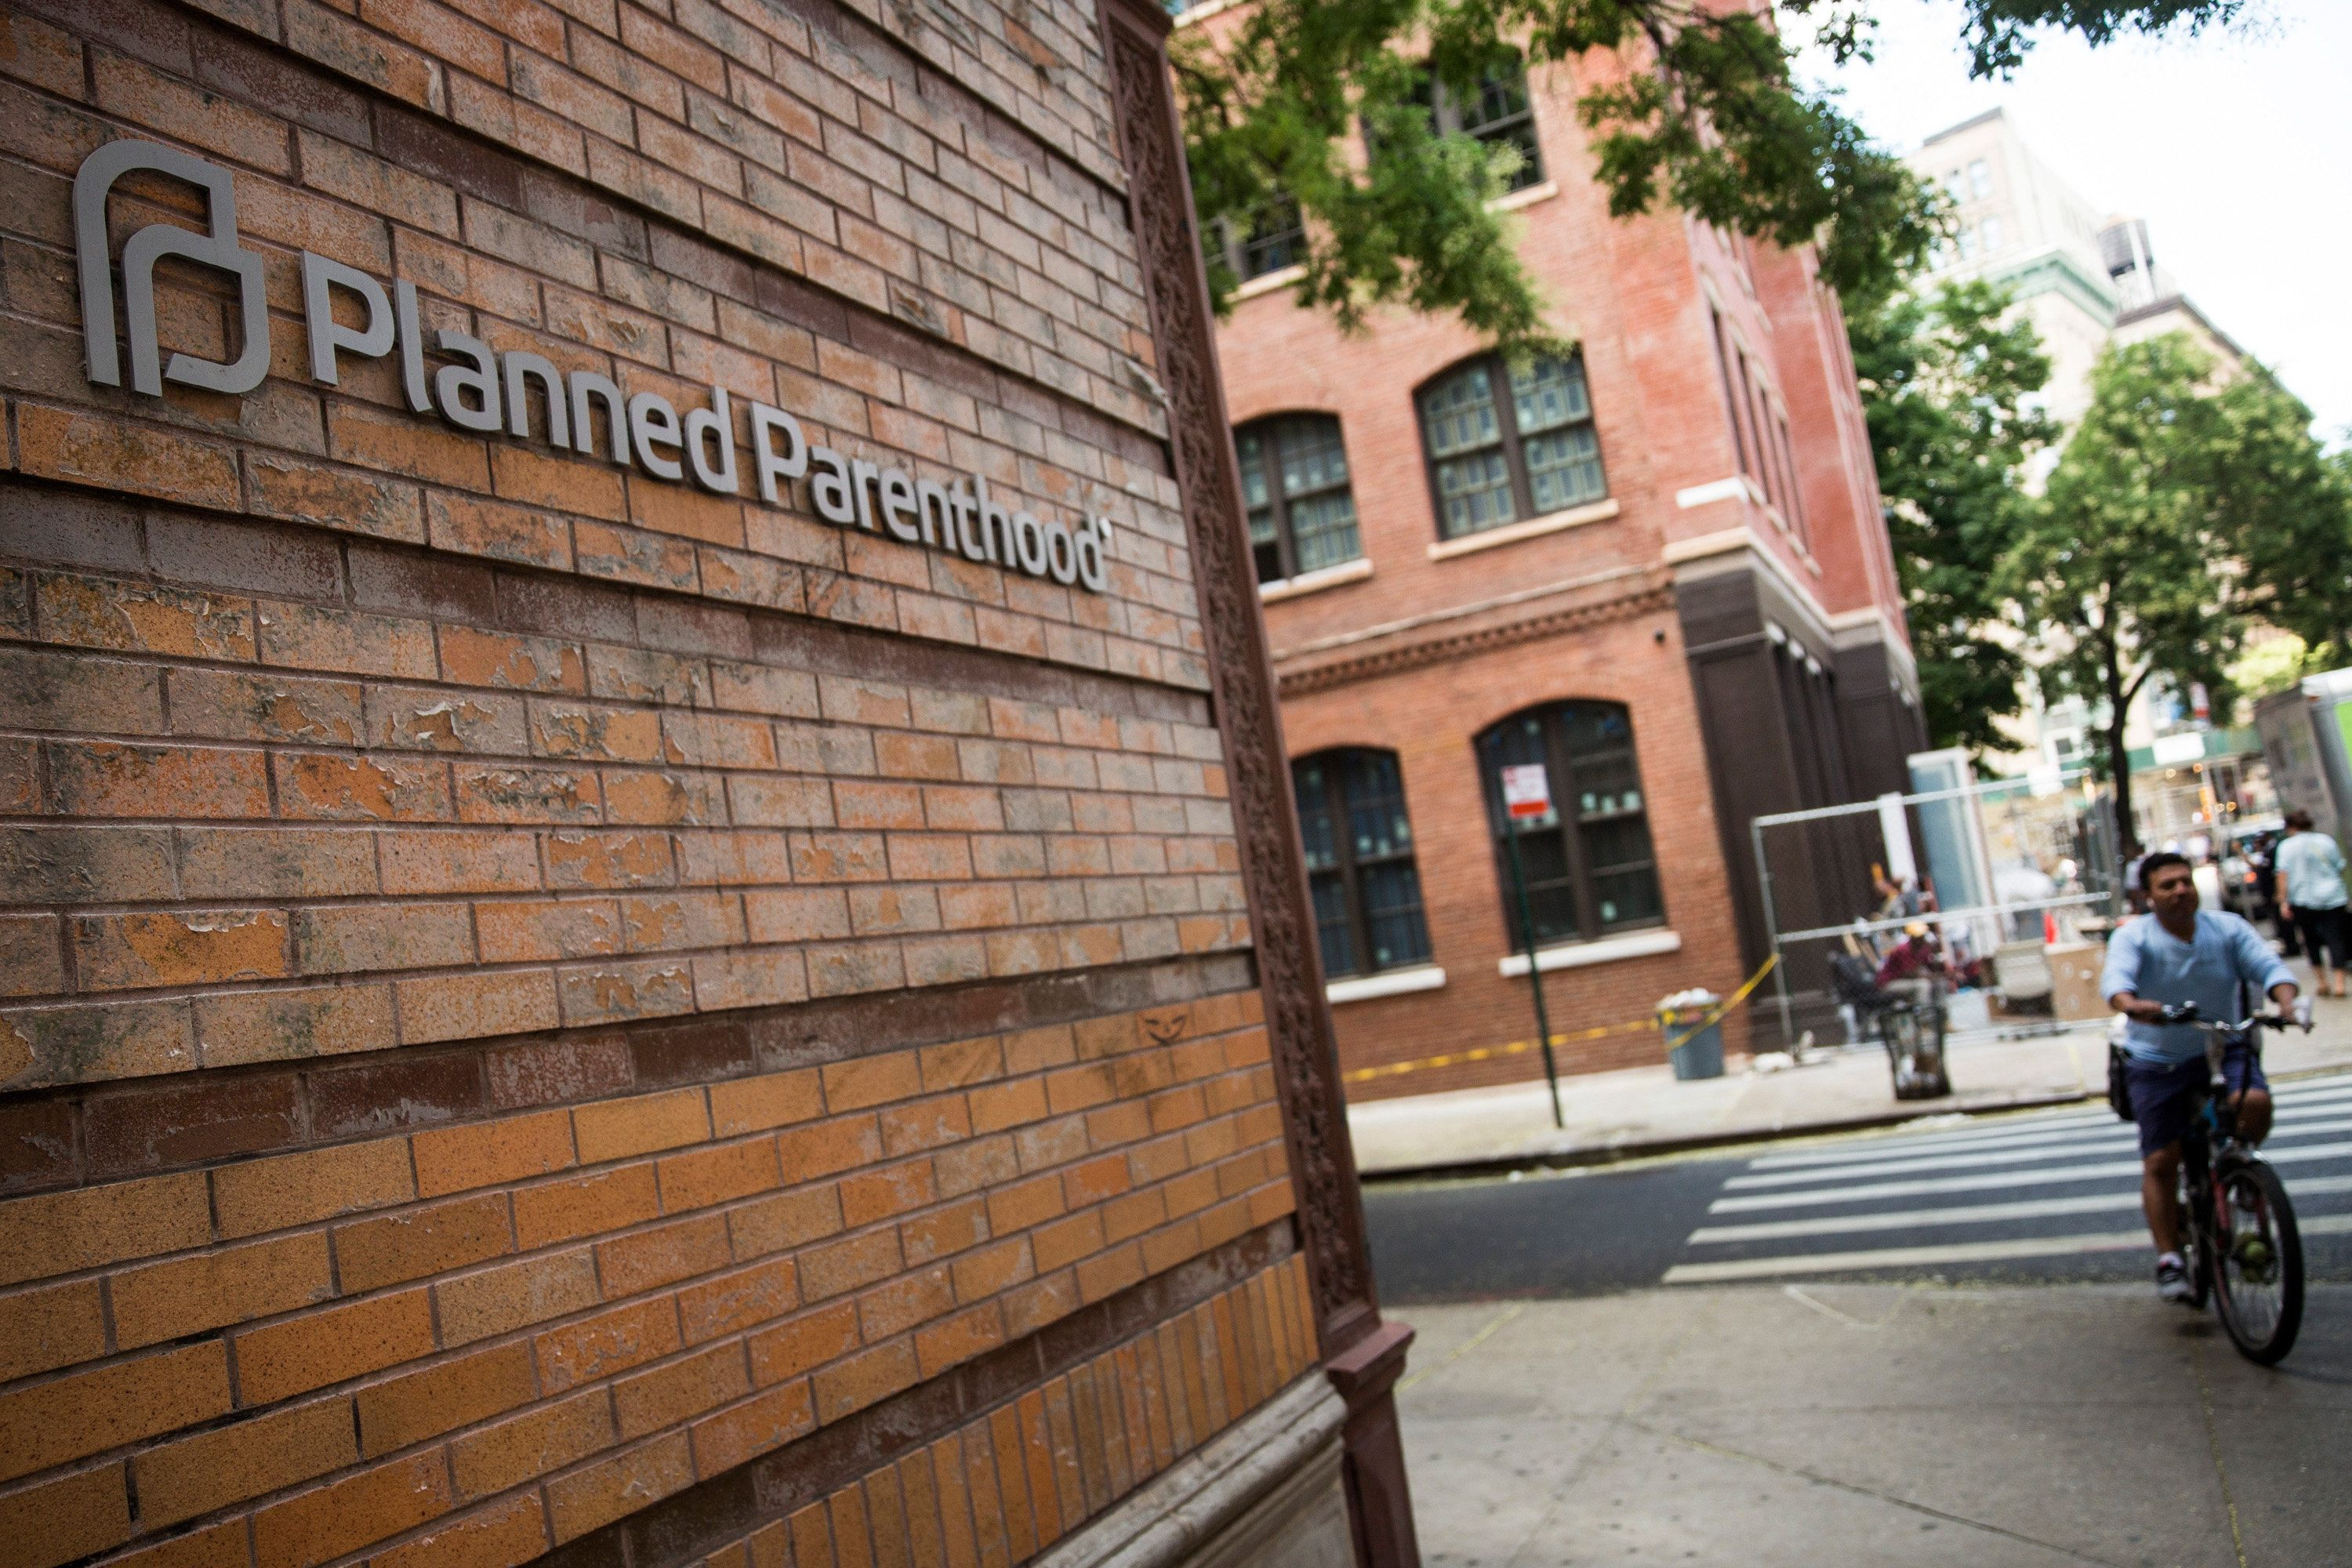 NEW YORK, NY - AUGUST 05:  A Planned Parenthood location is seen on August 5, 2015 in New York City. The women's health organization has come under fire from Republicans recently after an under cover video allegedly showed a Planned Parenthood executive discussing selling cells from aborted fetuses.  (Photo by Andrew Burton/Getty Images)